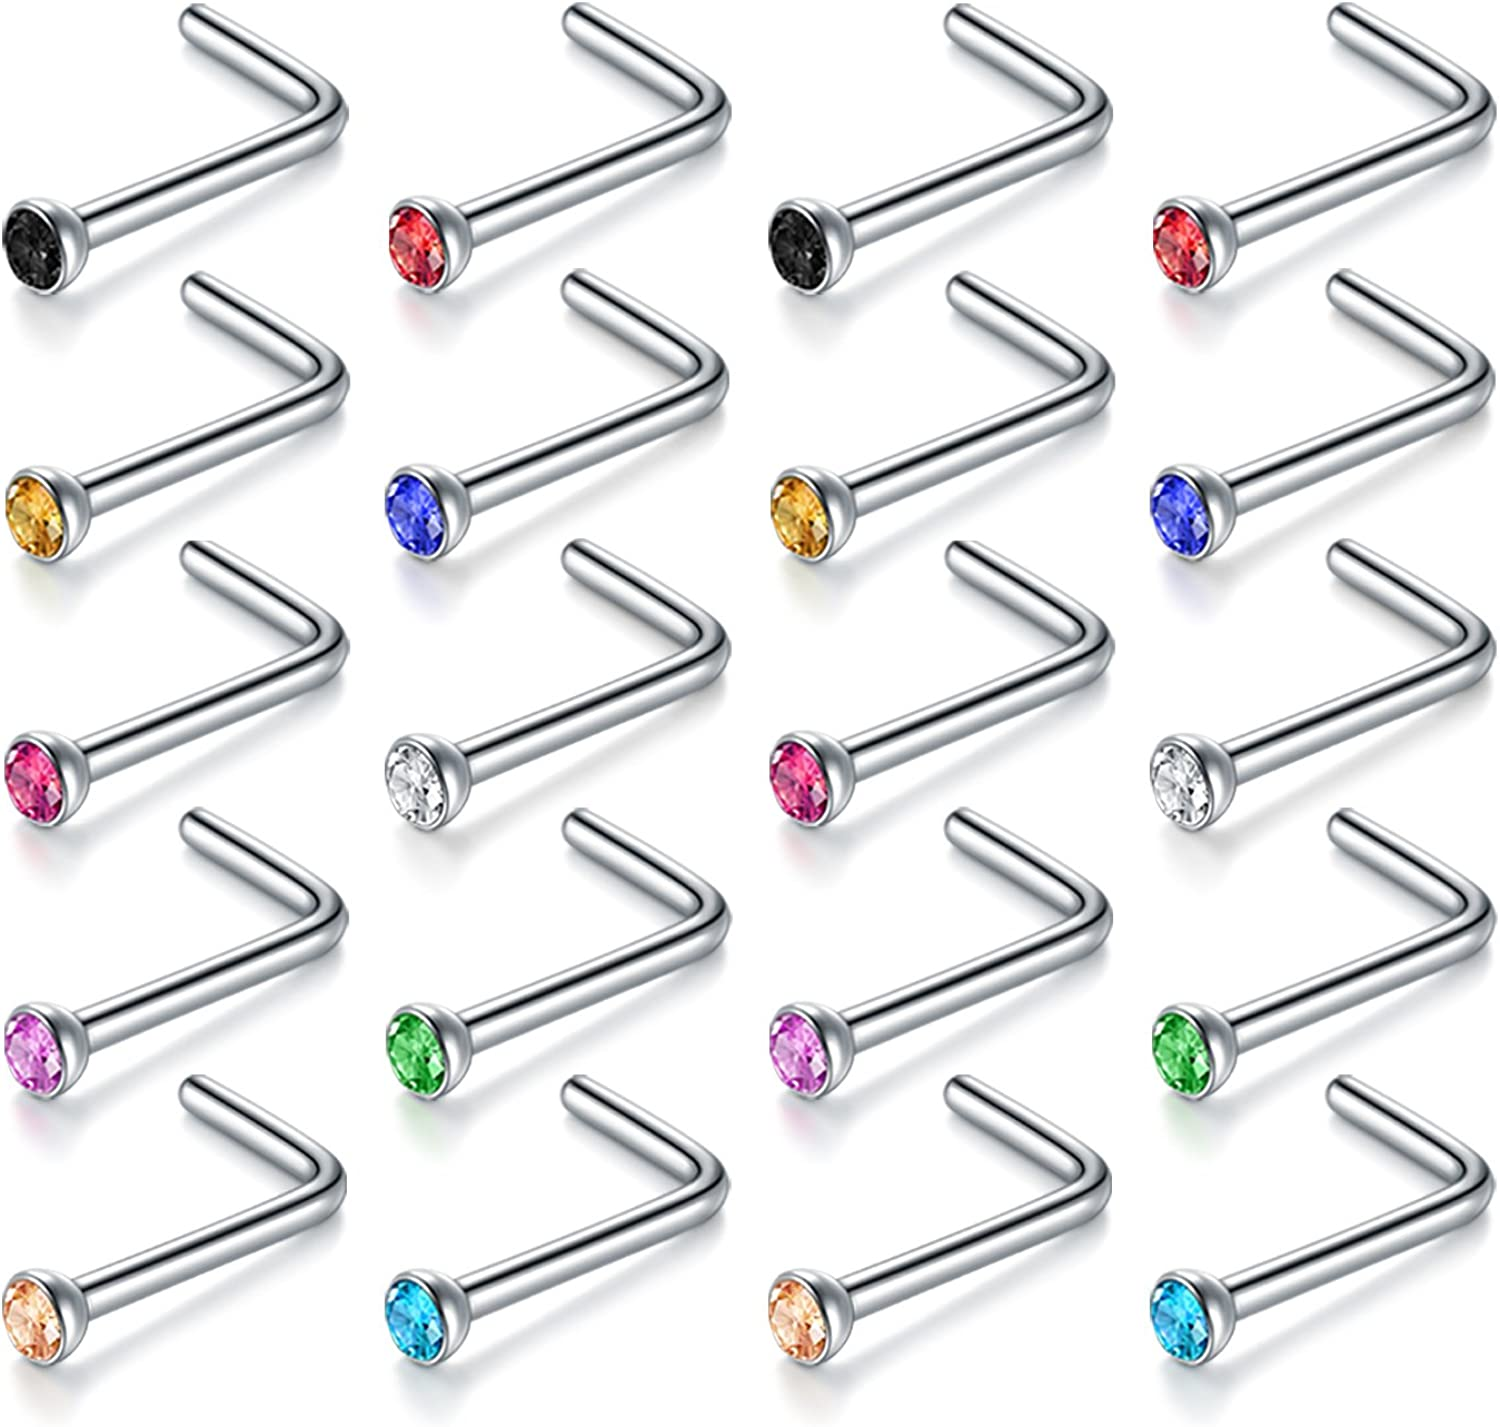 vcmart Nose Rings Studs-20G 20-30pcs 2mm CZ Nose Screw Studs 316L Surgical Steel Bone Nose Studs Nose Piercing Body Jewelry